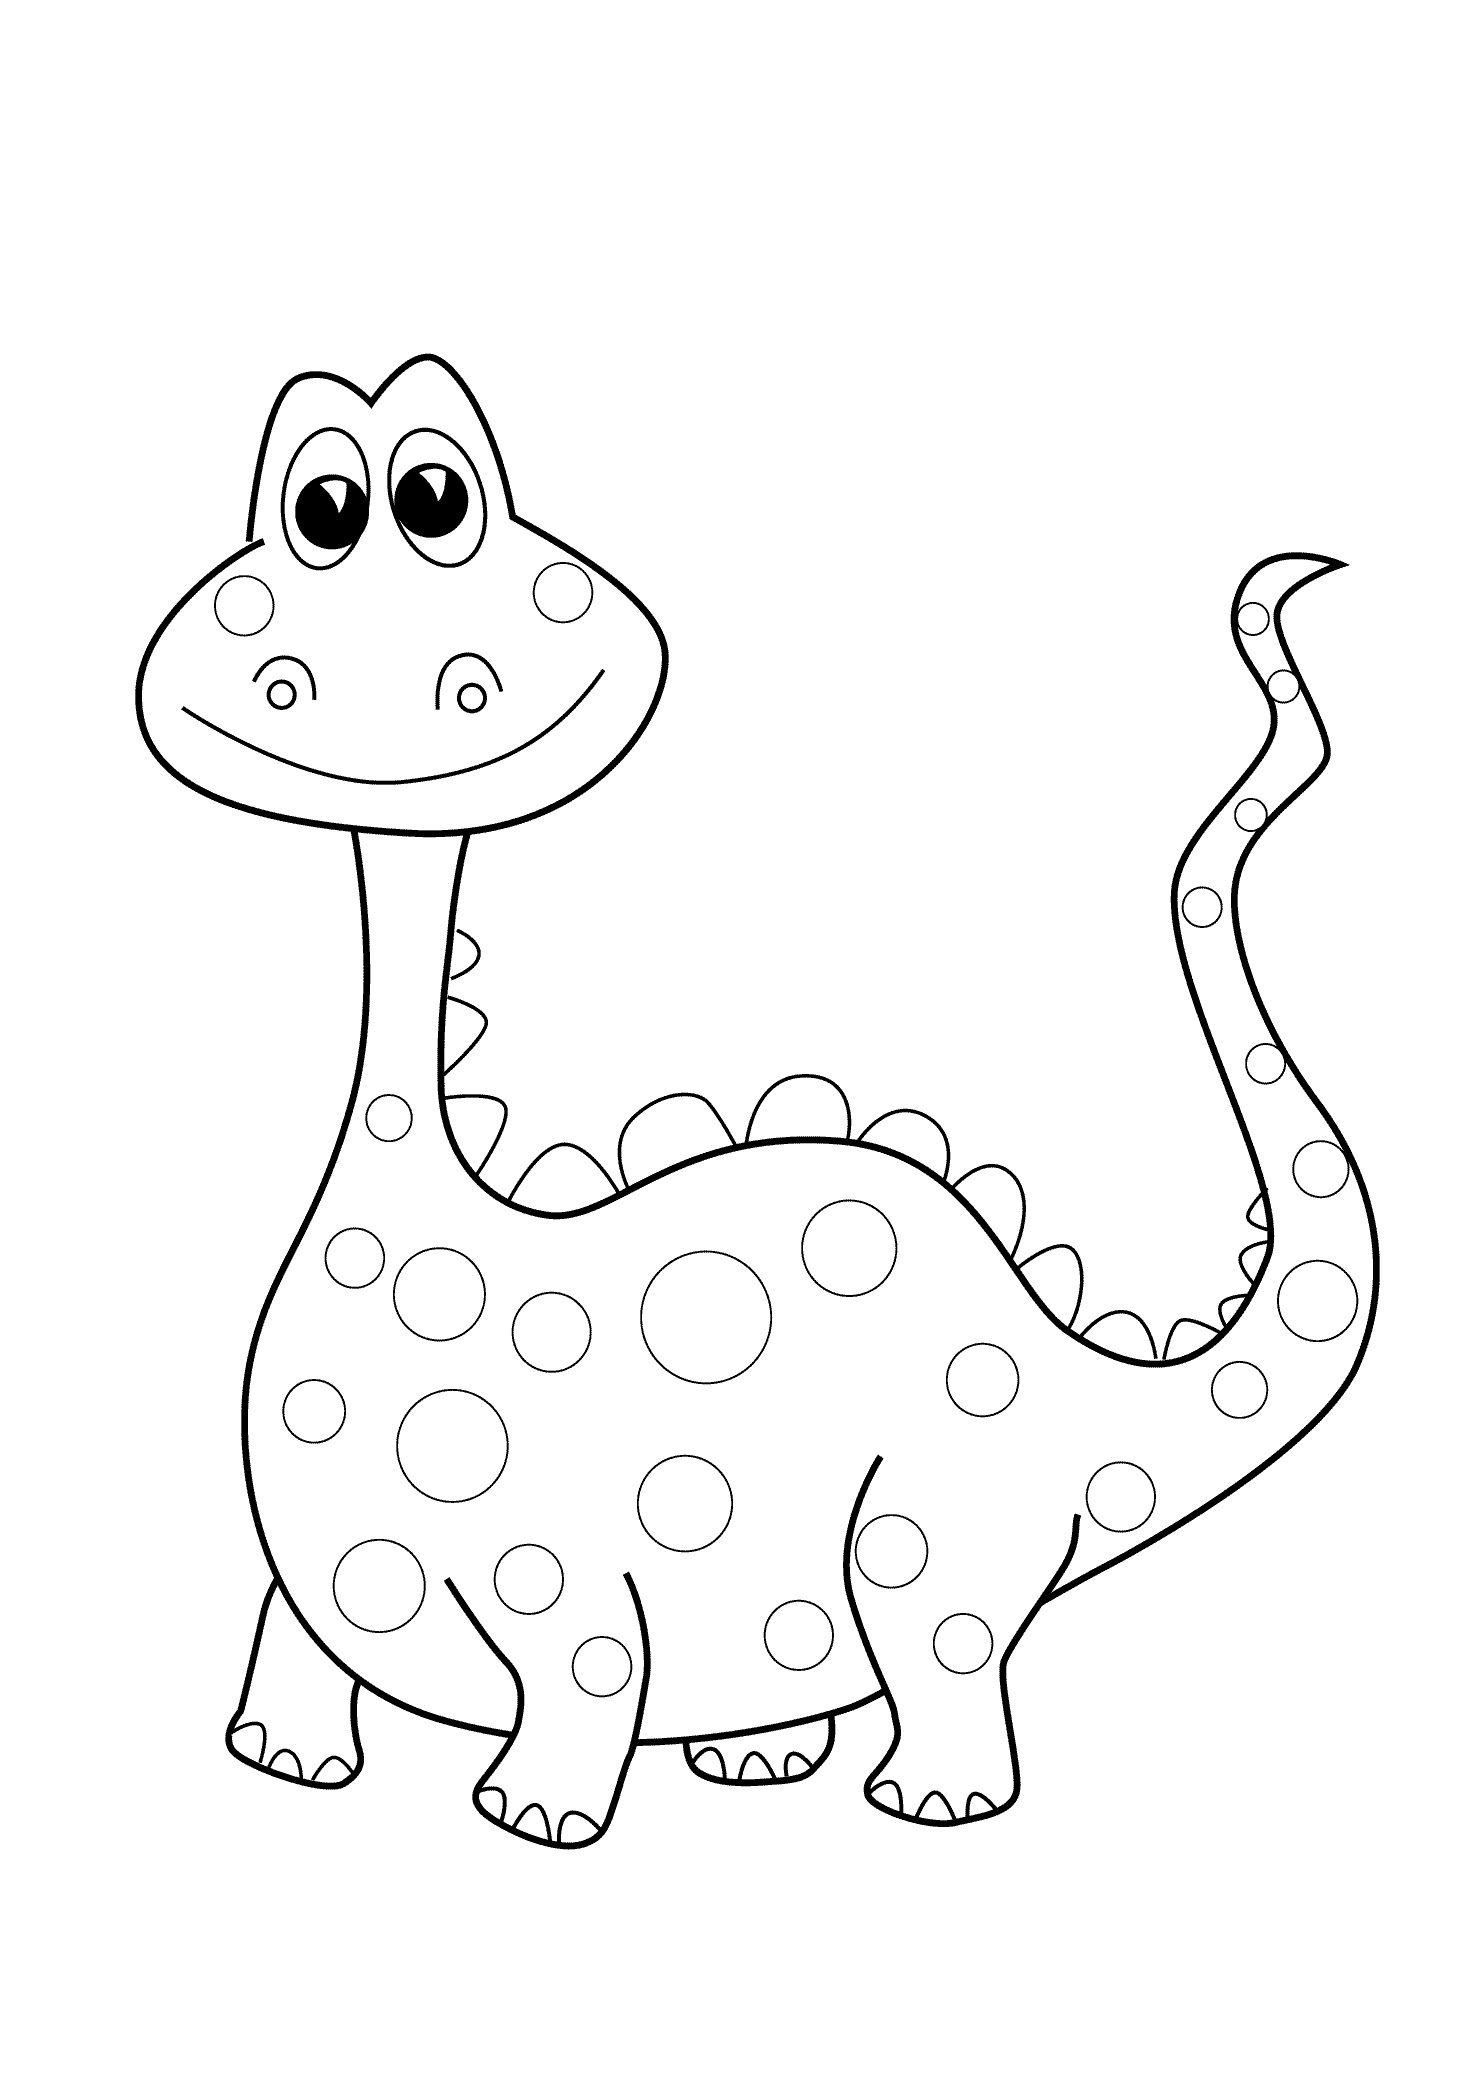 dinosaur coloring easy dinosaur coloring pages updated printable pdf print coloring easy dinosaur